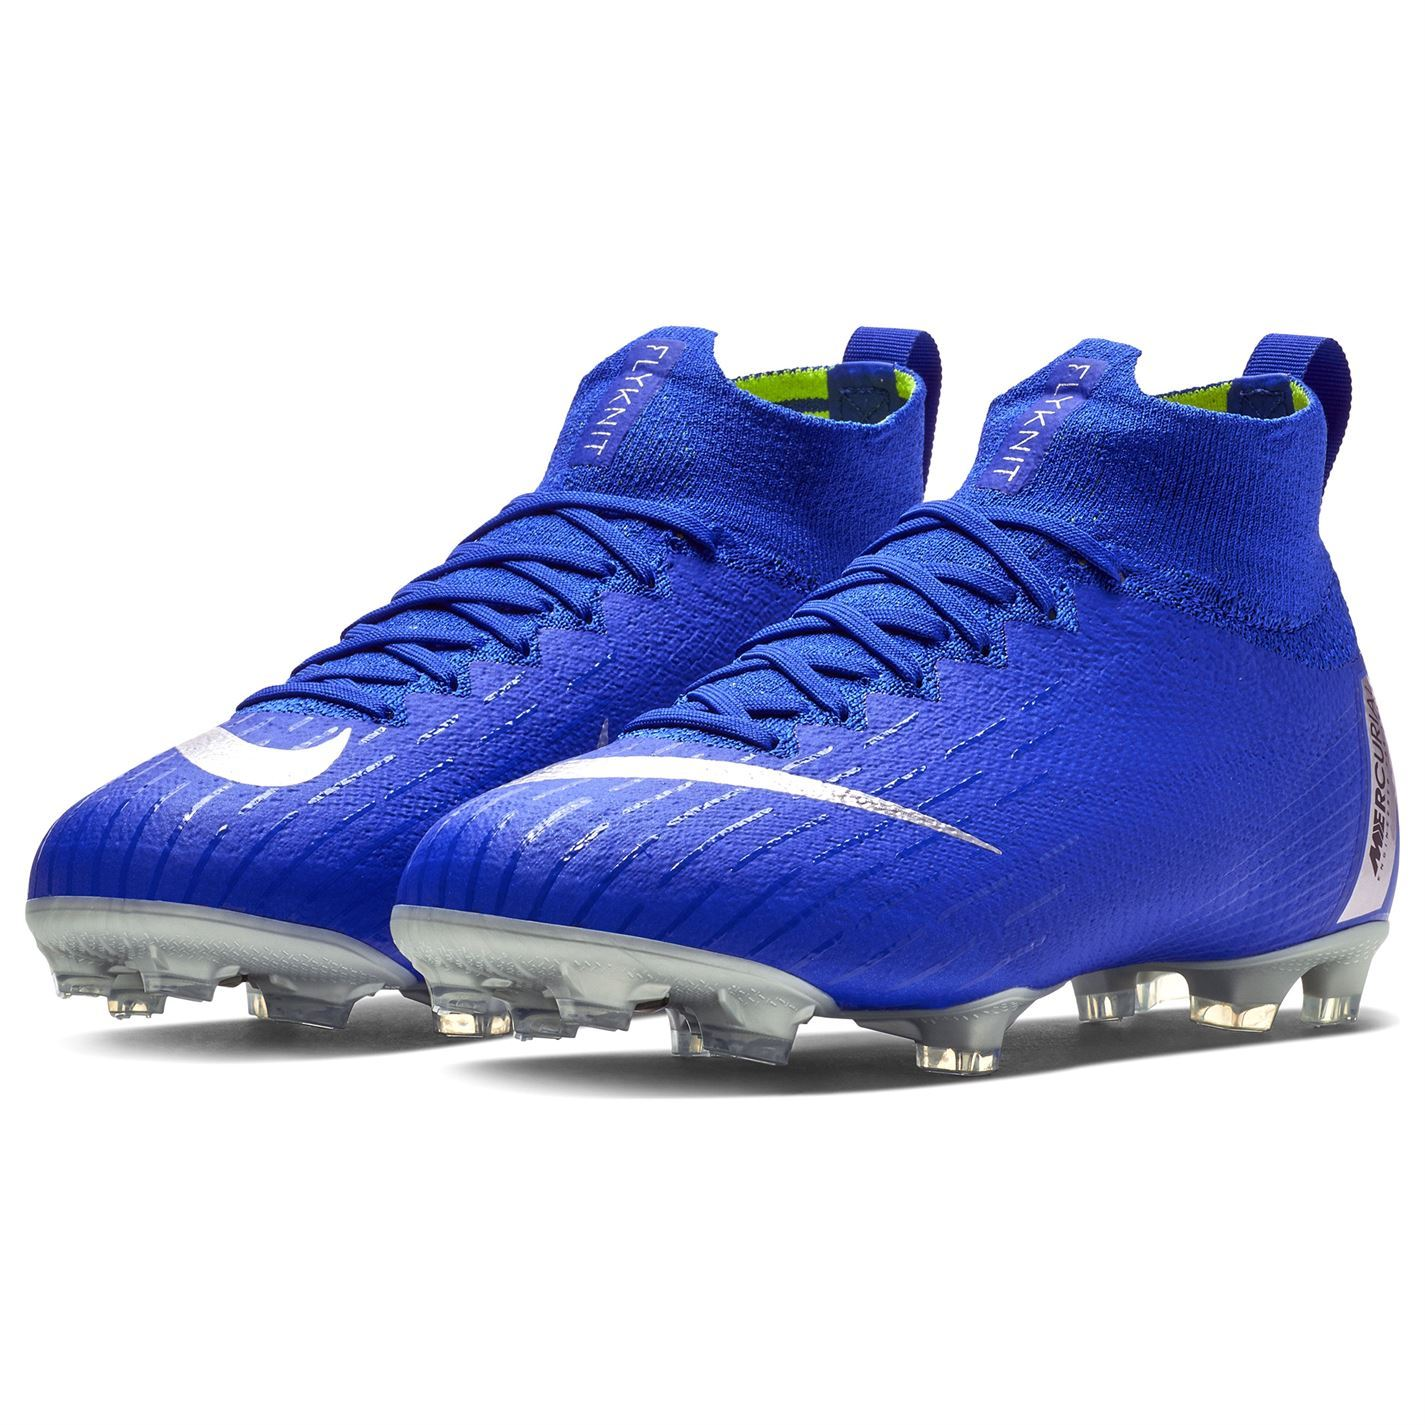 best service 911e3 56c34 Details about Nike Mercurial Superfly Elite Football Boots Firm Ground  Juniors Soccer Cleats